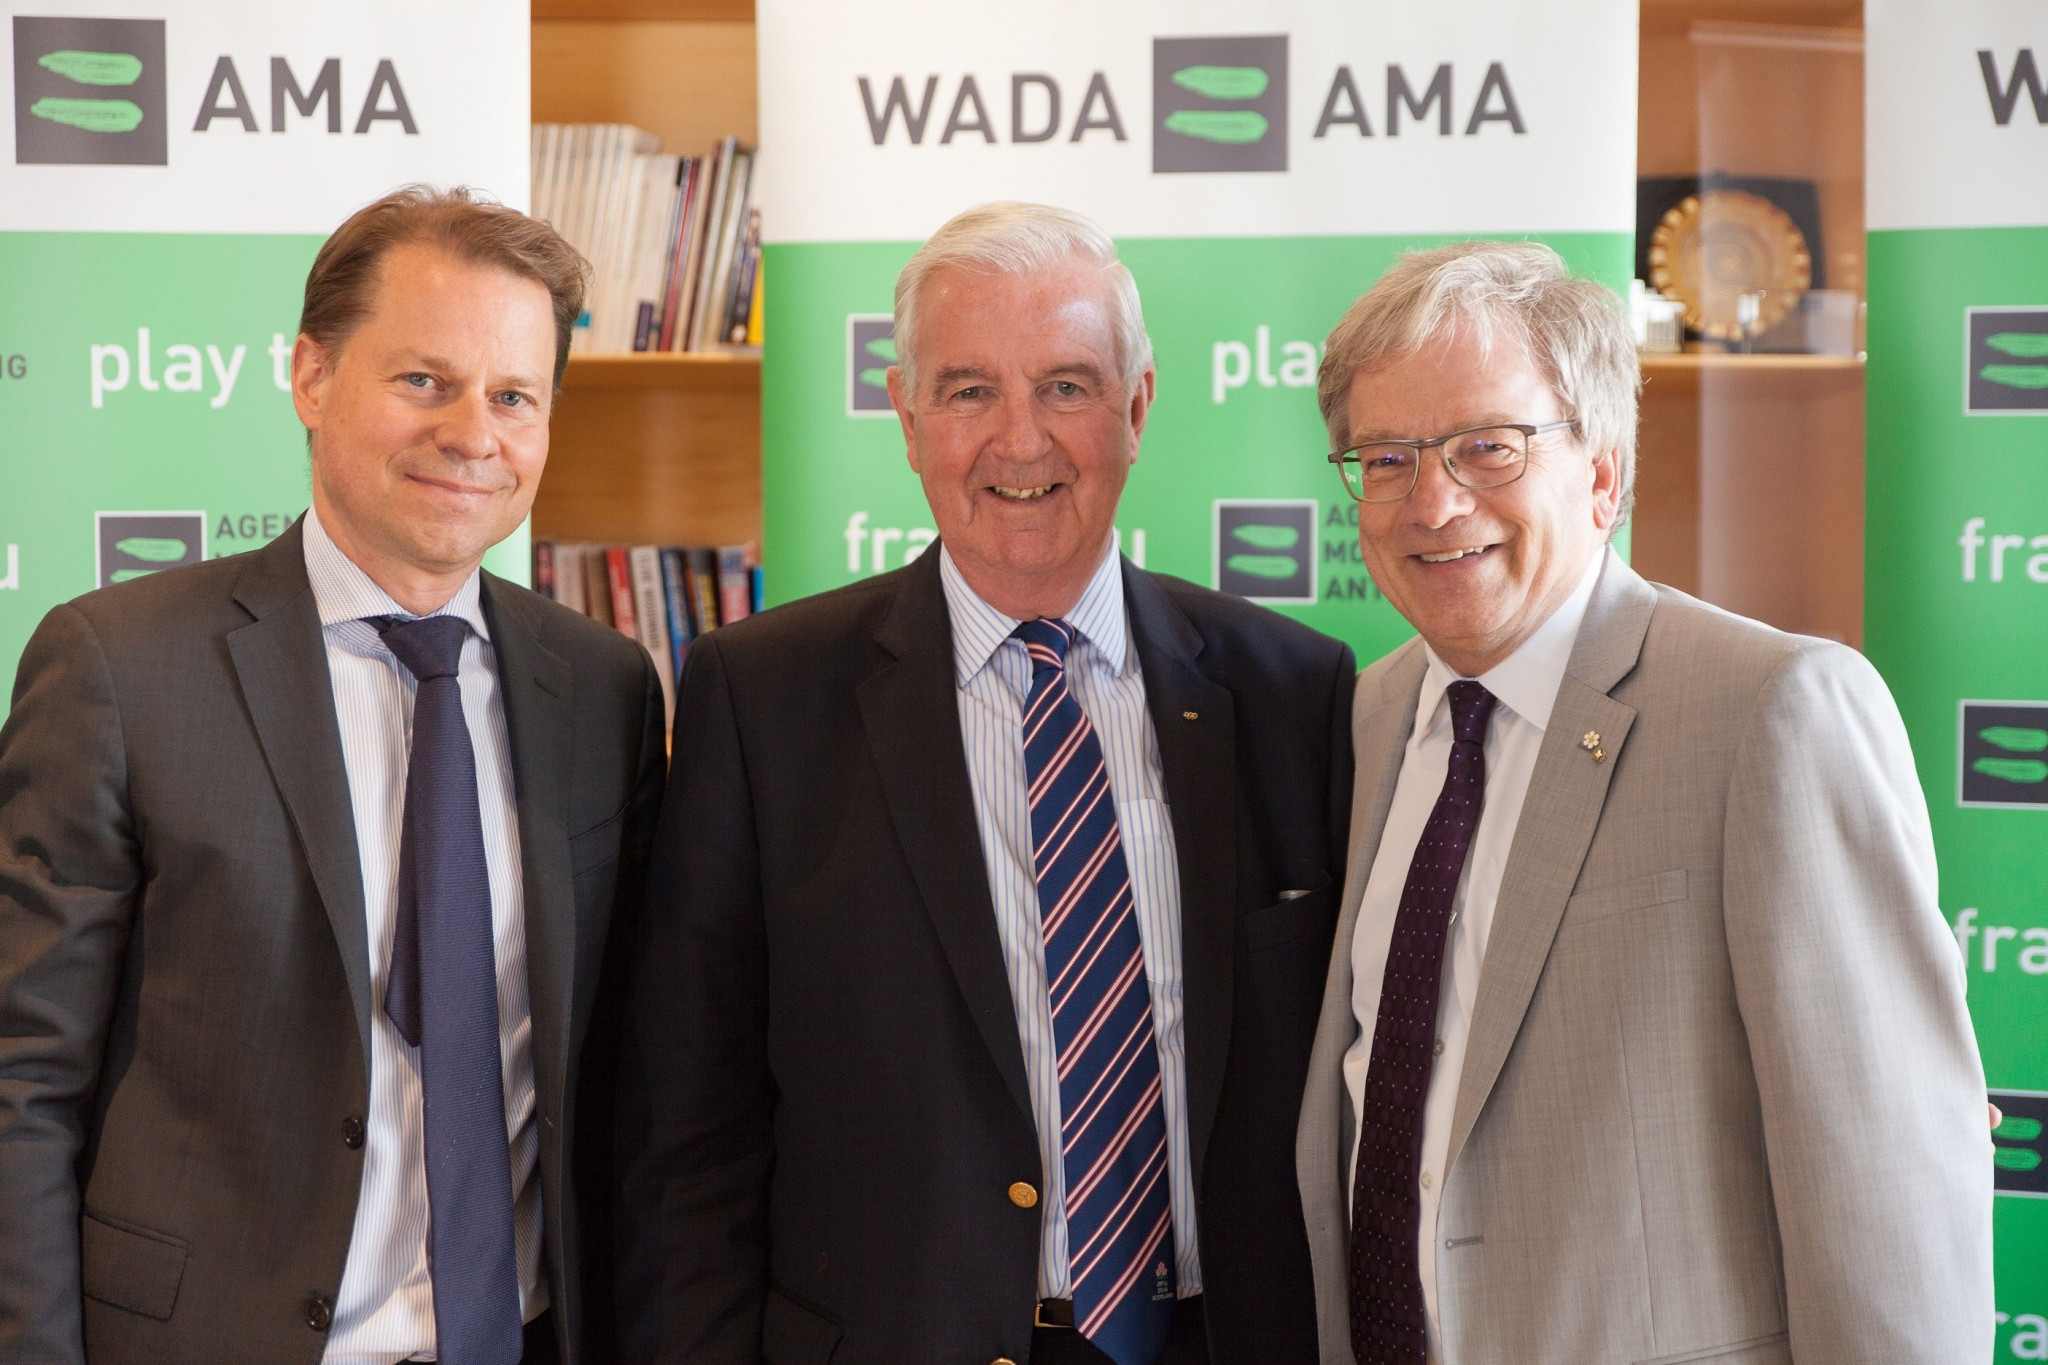 Divisions emerge at WADA meeting over Russian Federation suspension